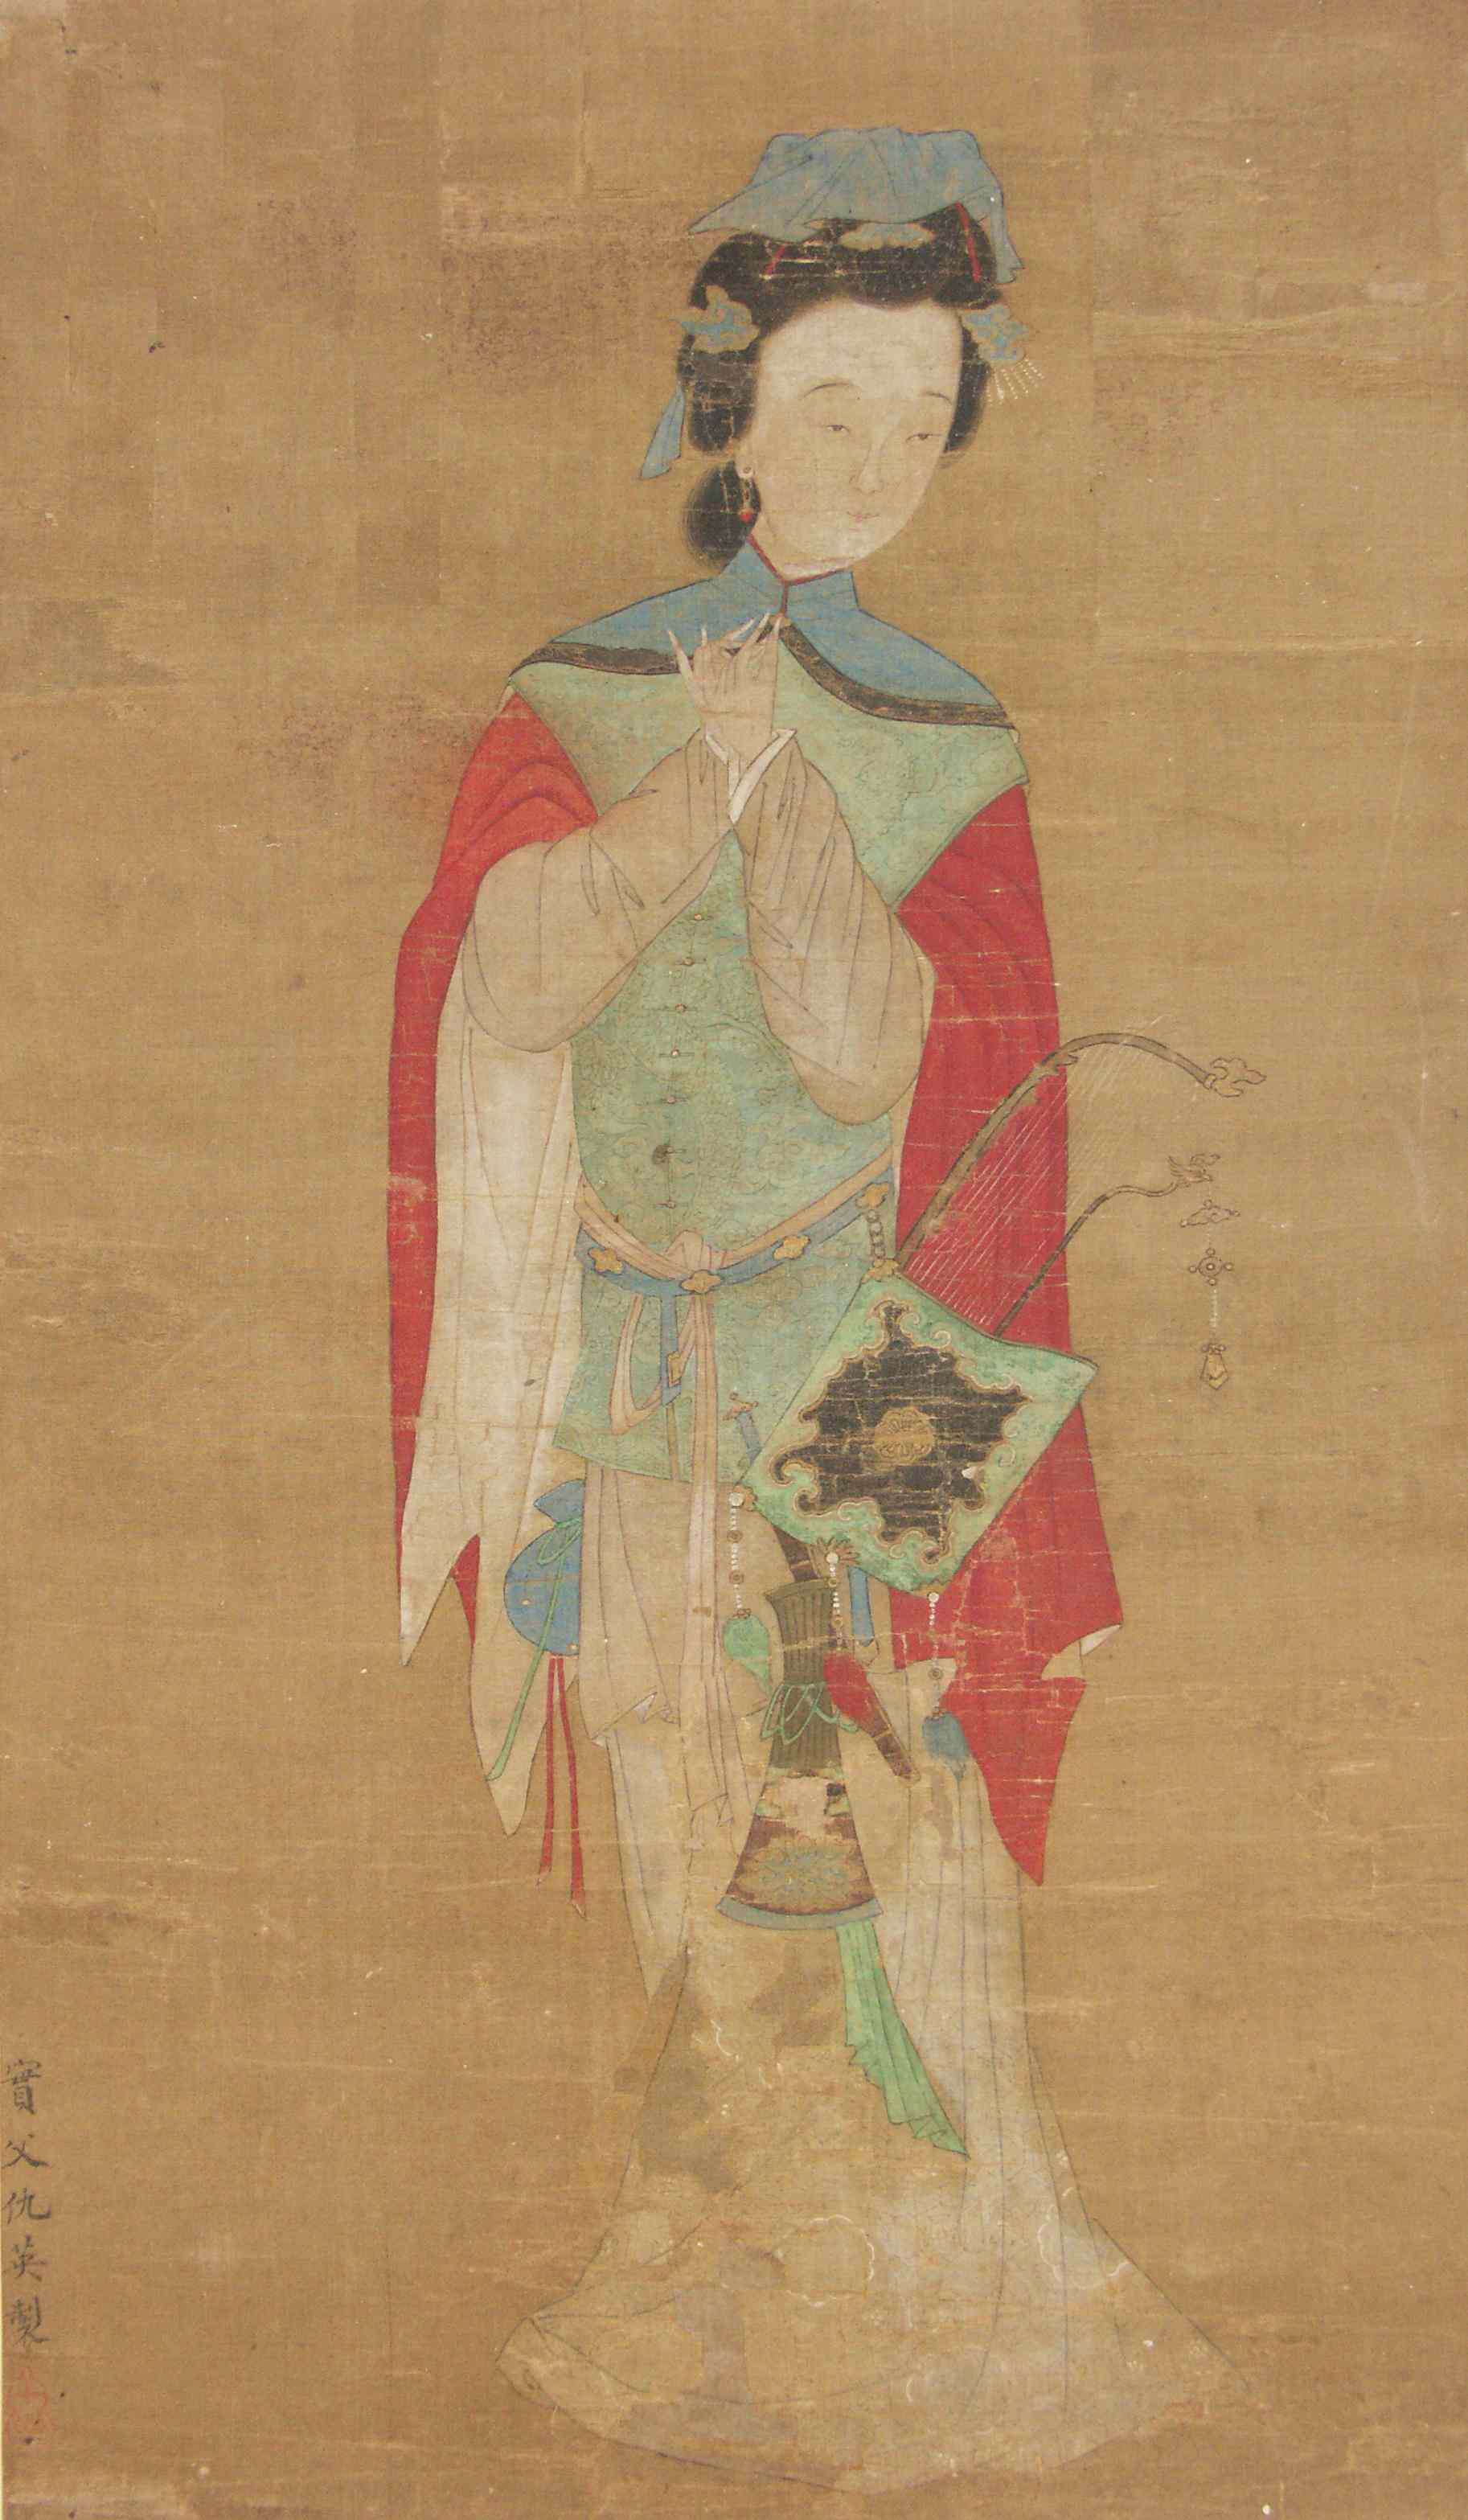 A painting of Mulan on silk from the eighteenth century.